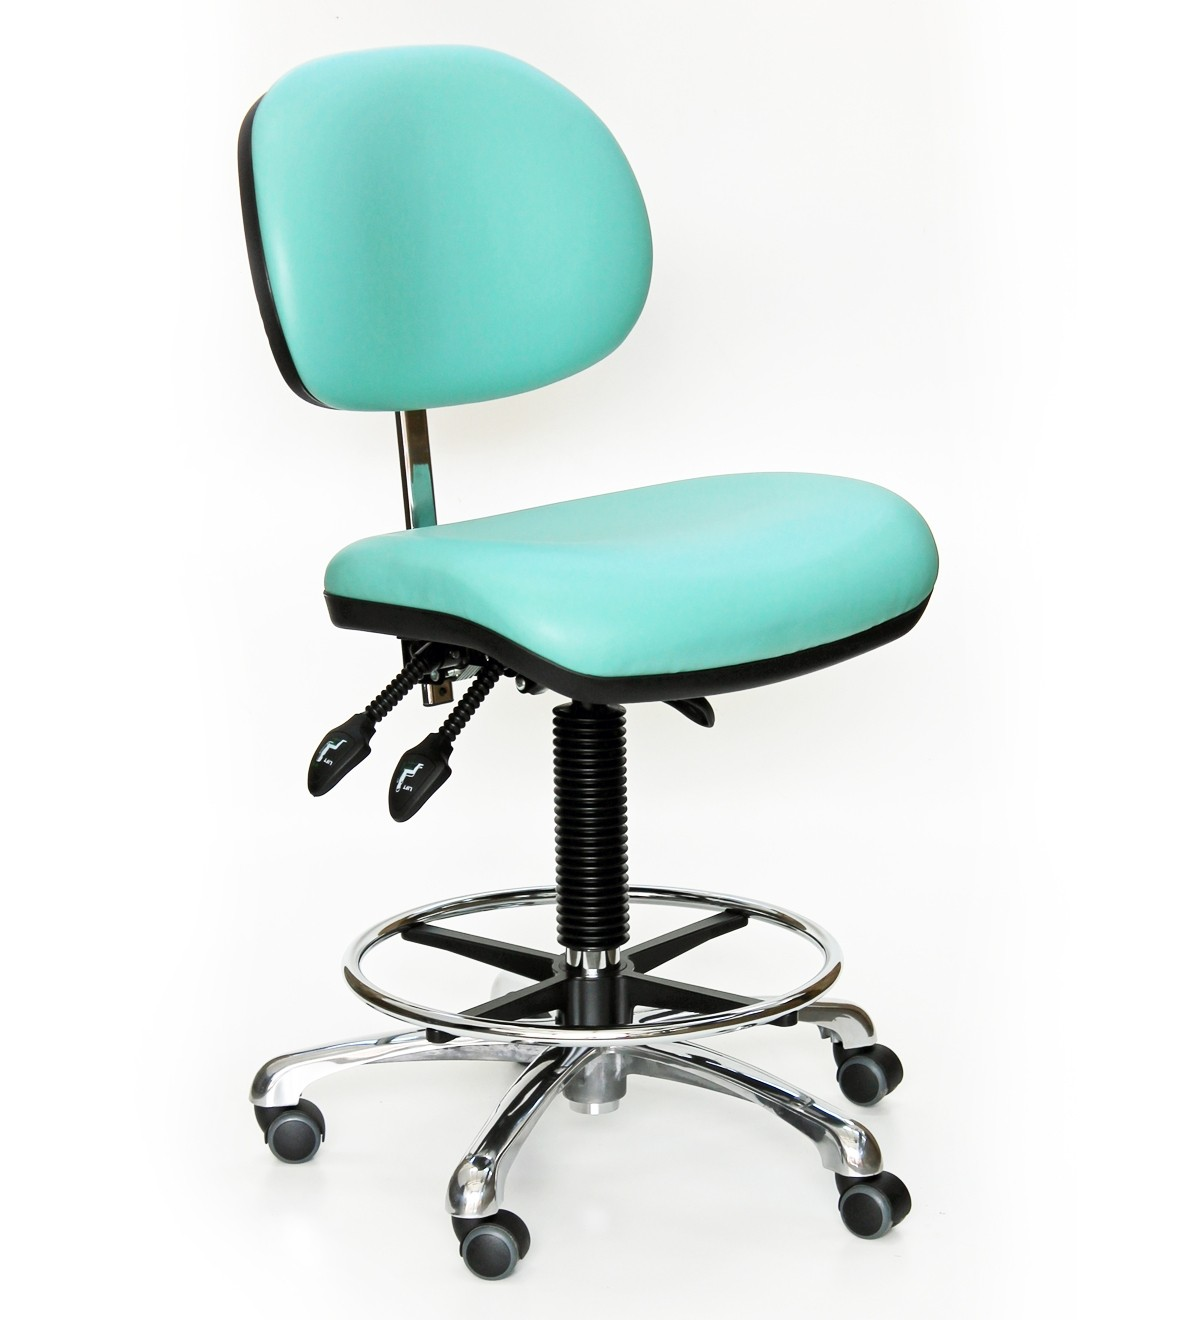 C40 - High chair with feet (steel foot ring) 600-870mm height adjustment